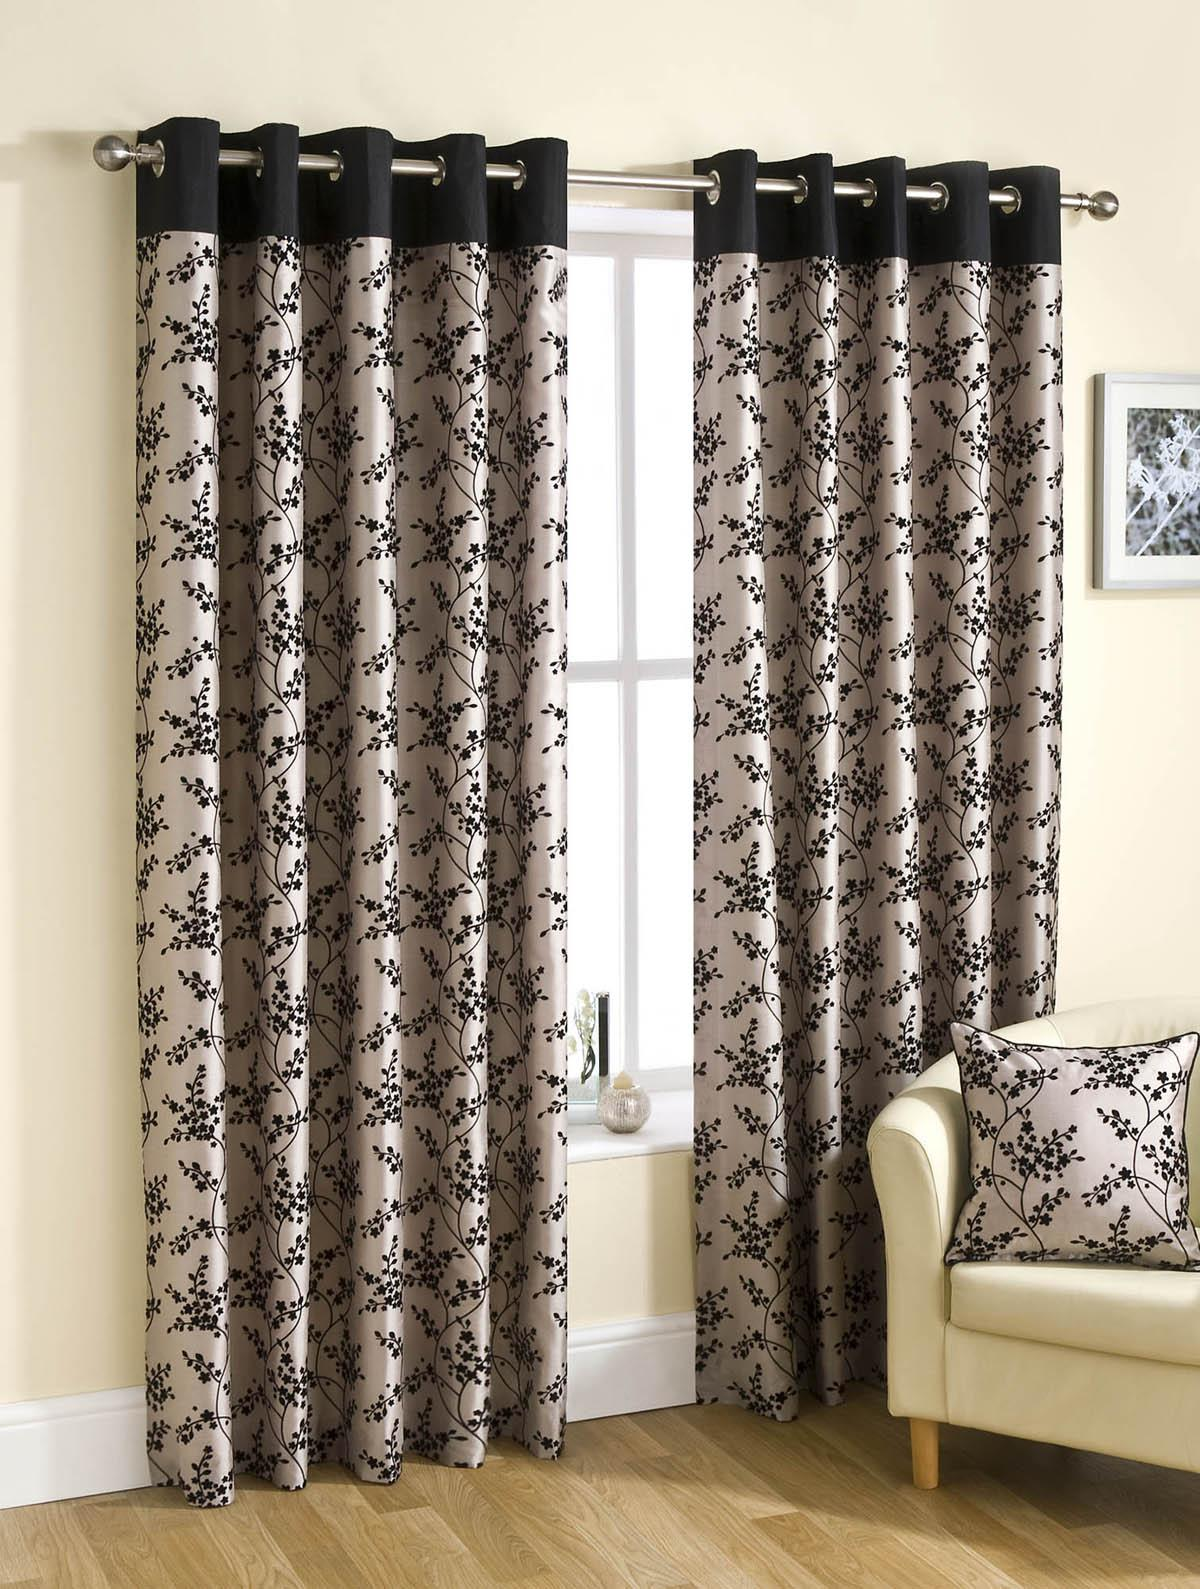 flora ready made eyelet curtains fully lined black. Black Bedroom Furniture Sets. Home Design Ideas